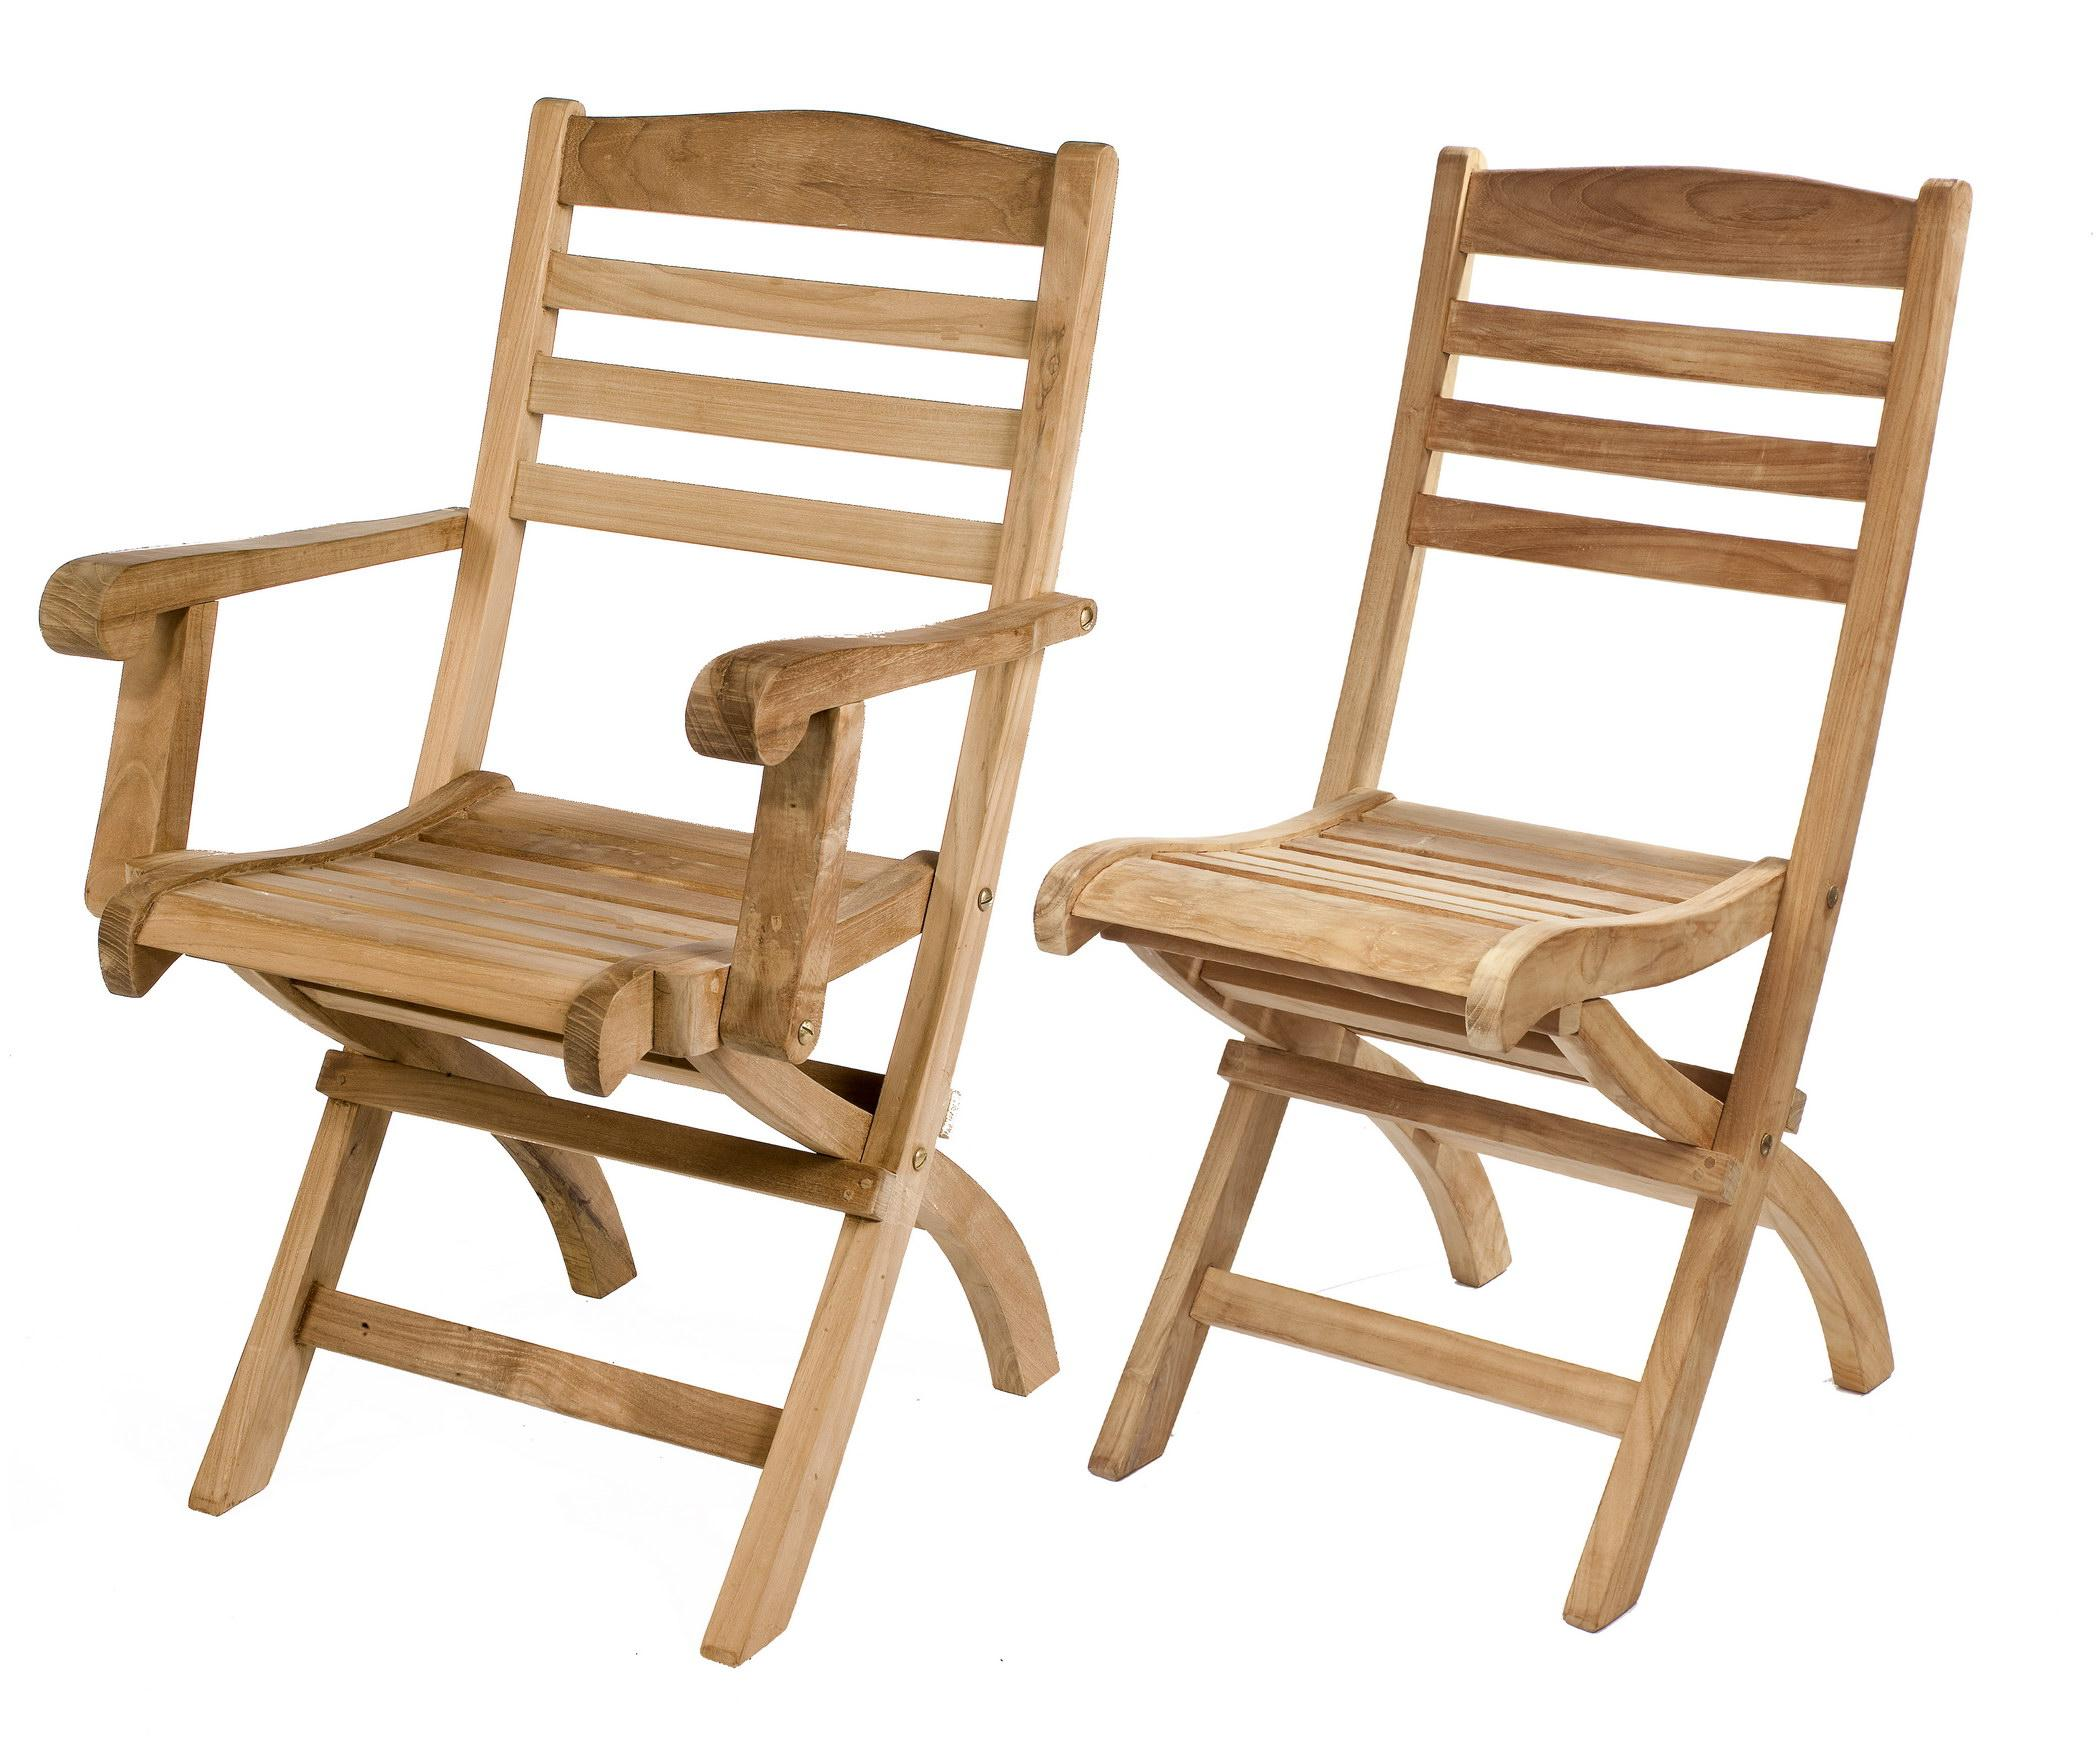 Teak Cumbira folding chair set